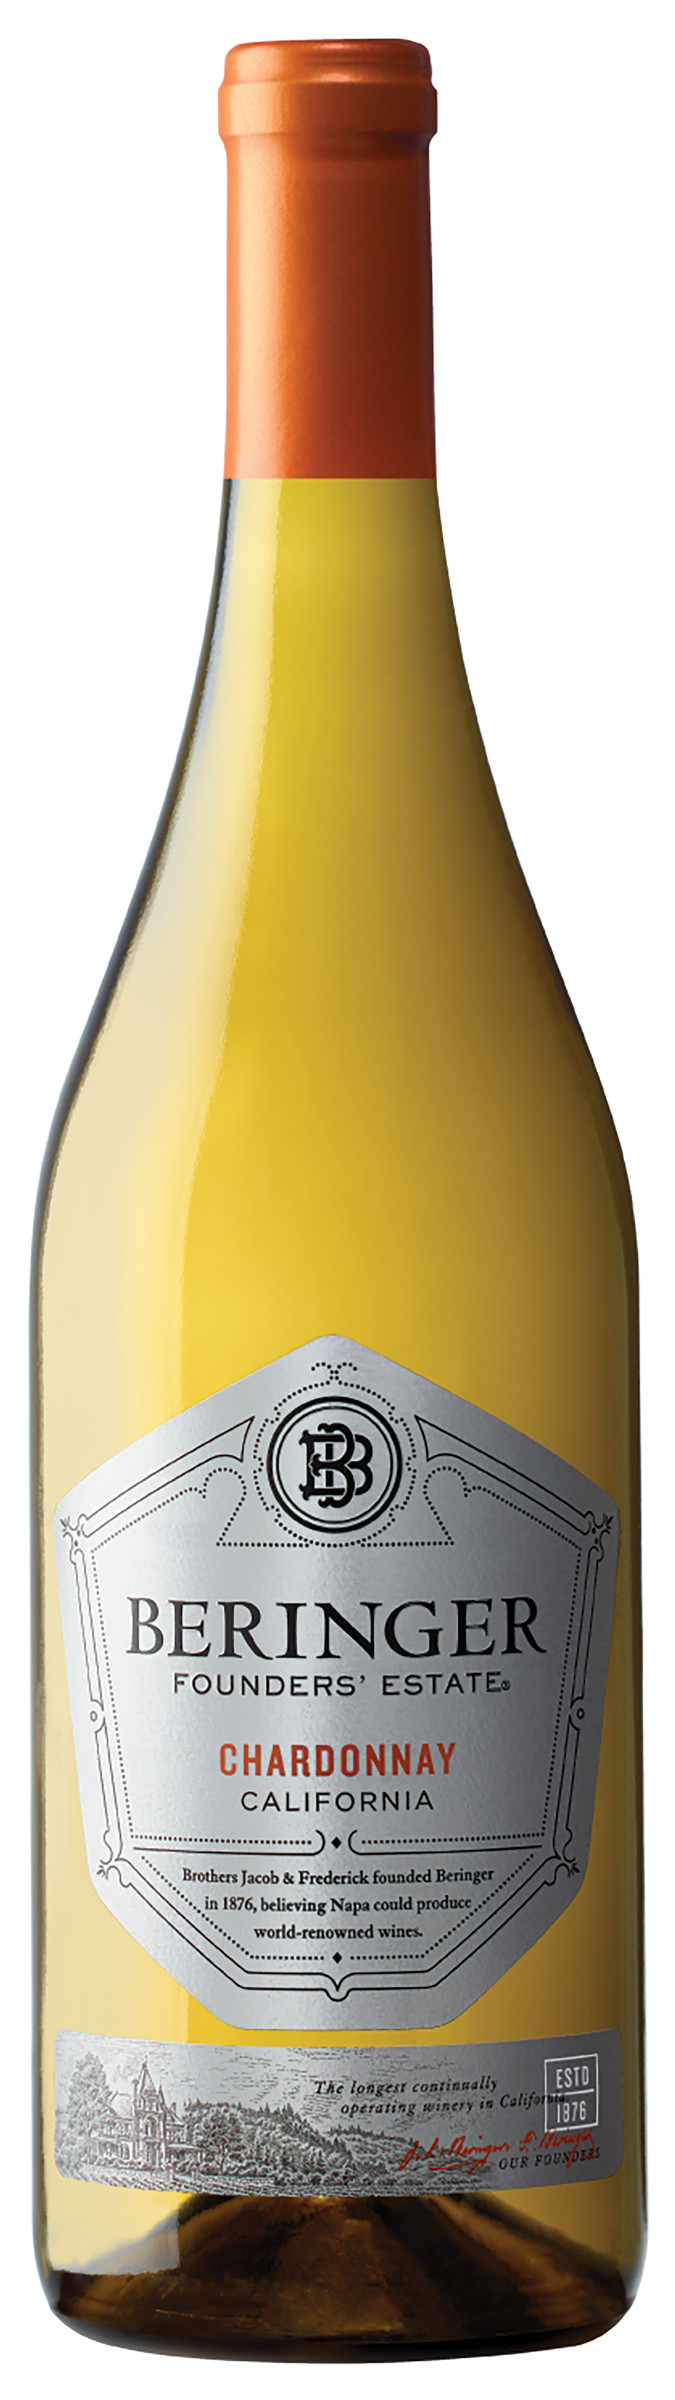 Beringer Founders' Estate, Chardonnay